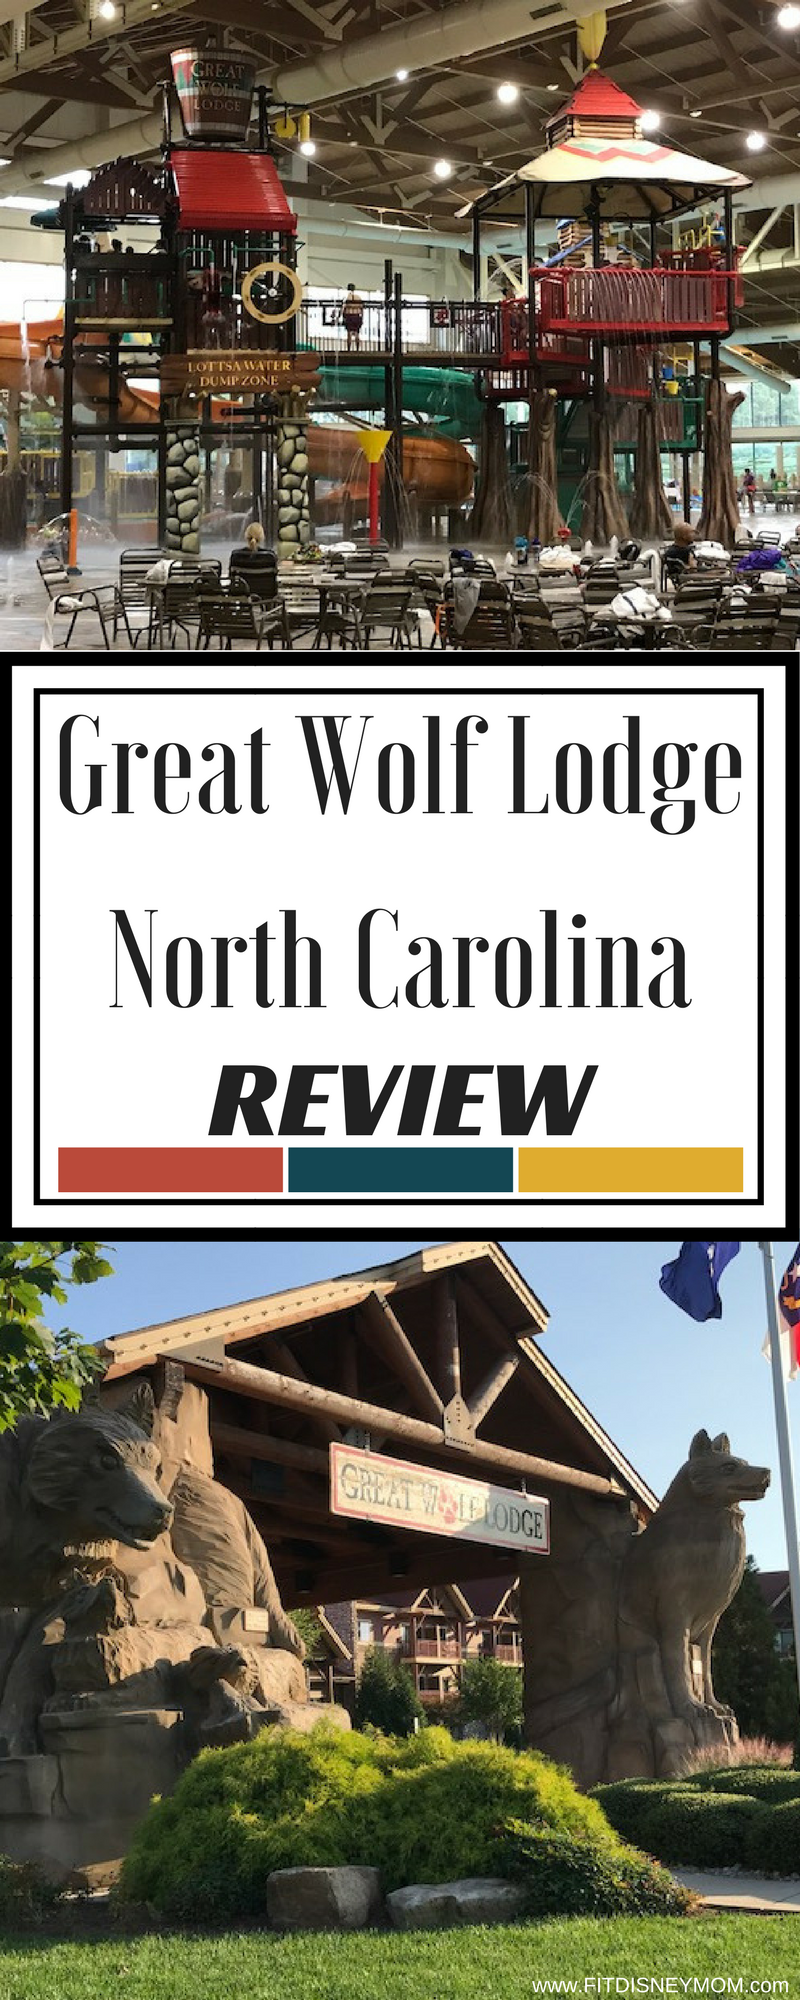 Great Wolf Lodge North Carolina, Great Wolf Lodge North Carolina Review, Great Wolf Lodge Review, Great Wolf Lodge NC